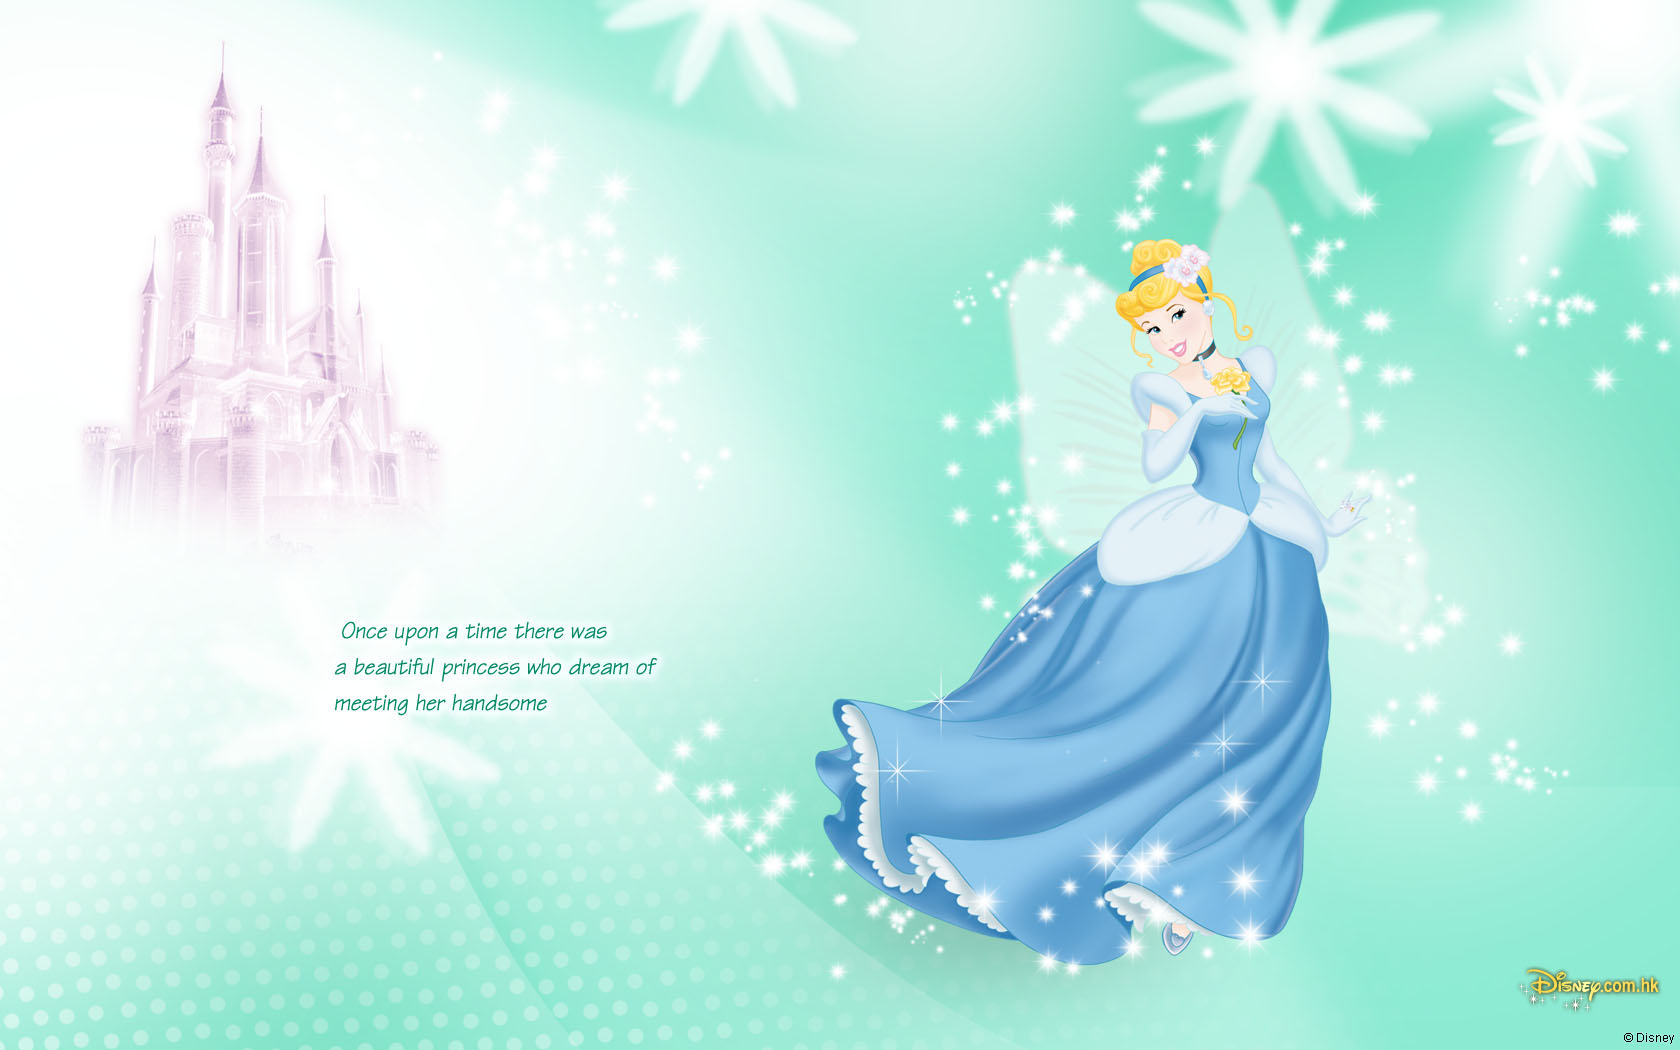 Animal Computer Wallpaper Princess Disney Wallpaper Widescreen 10108 Wallpaper